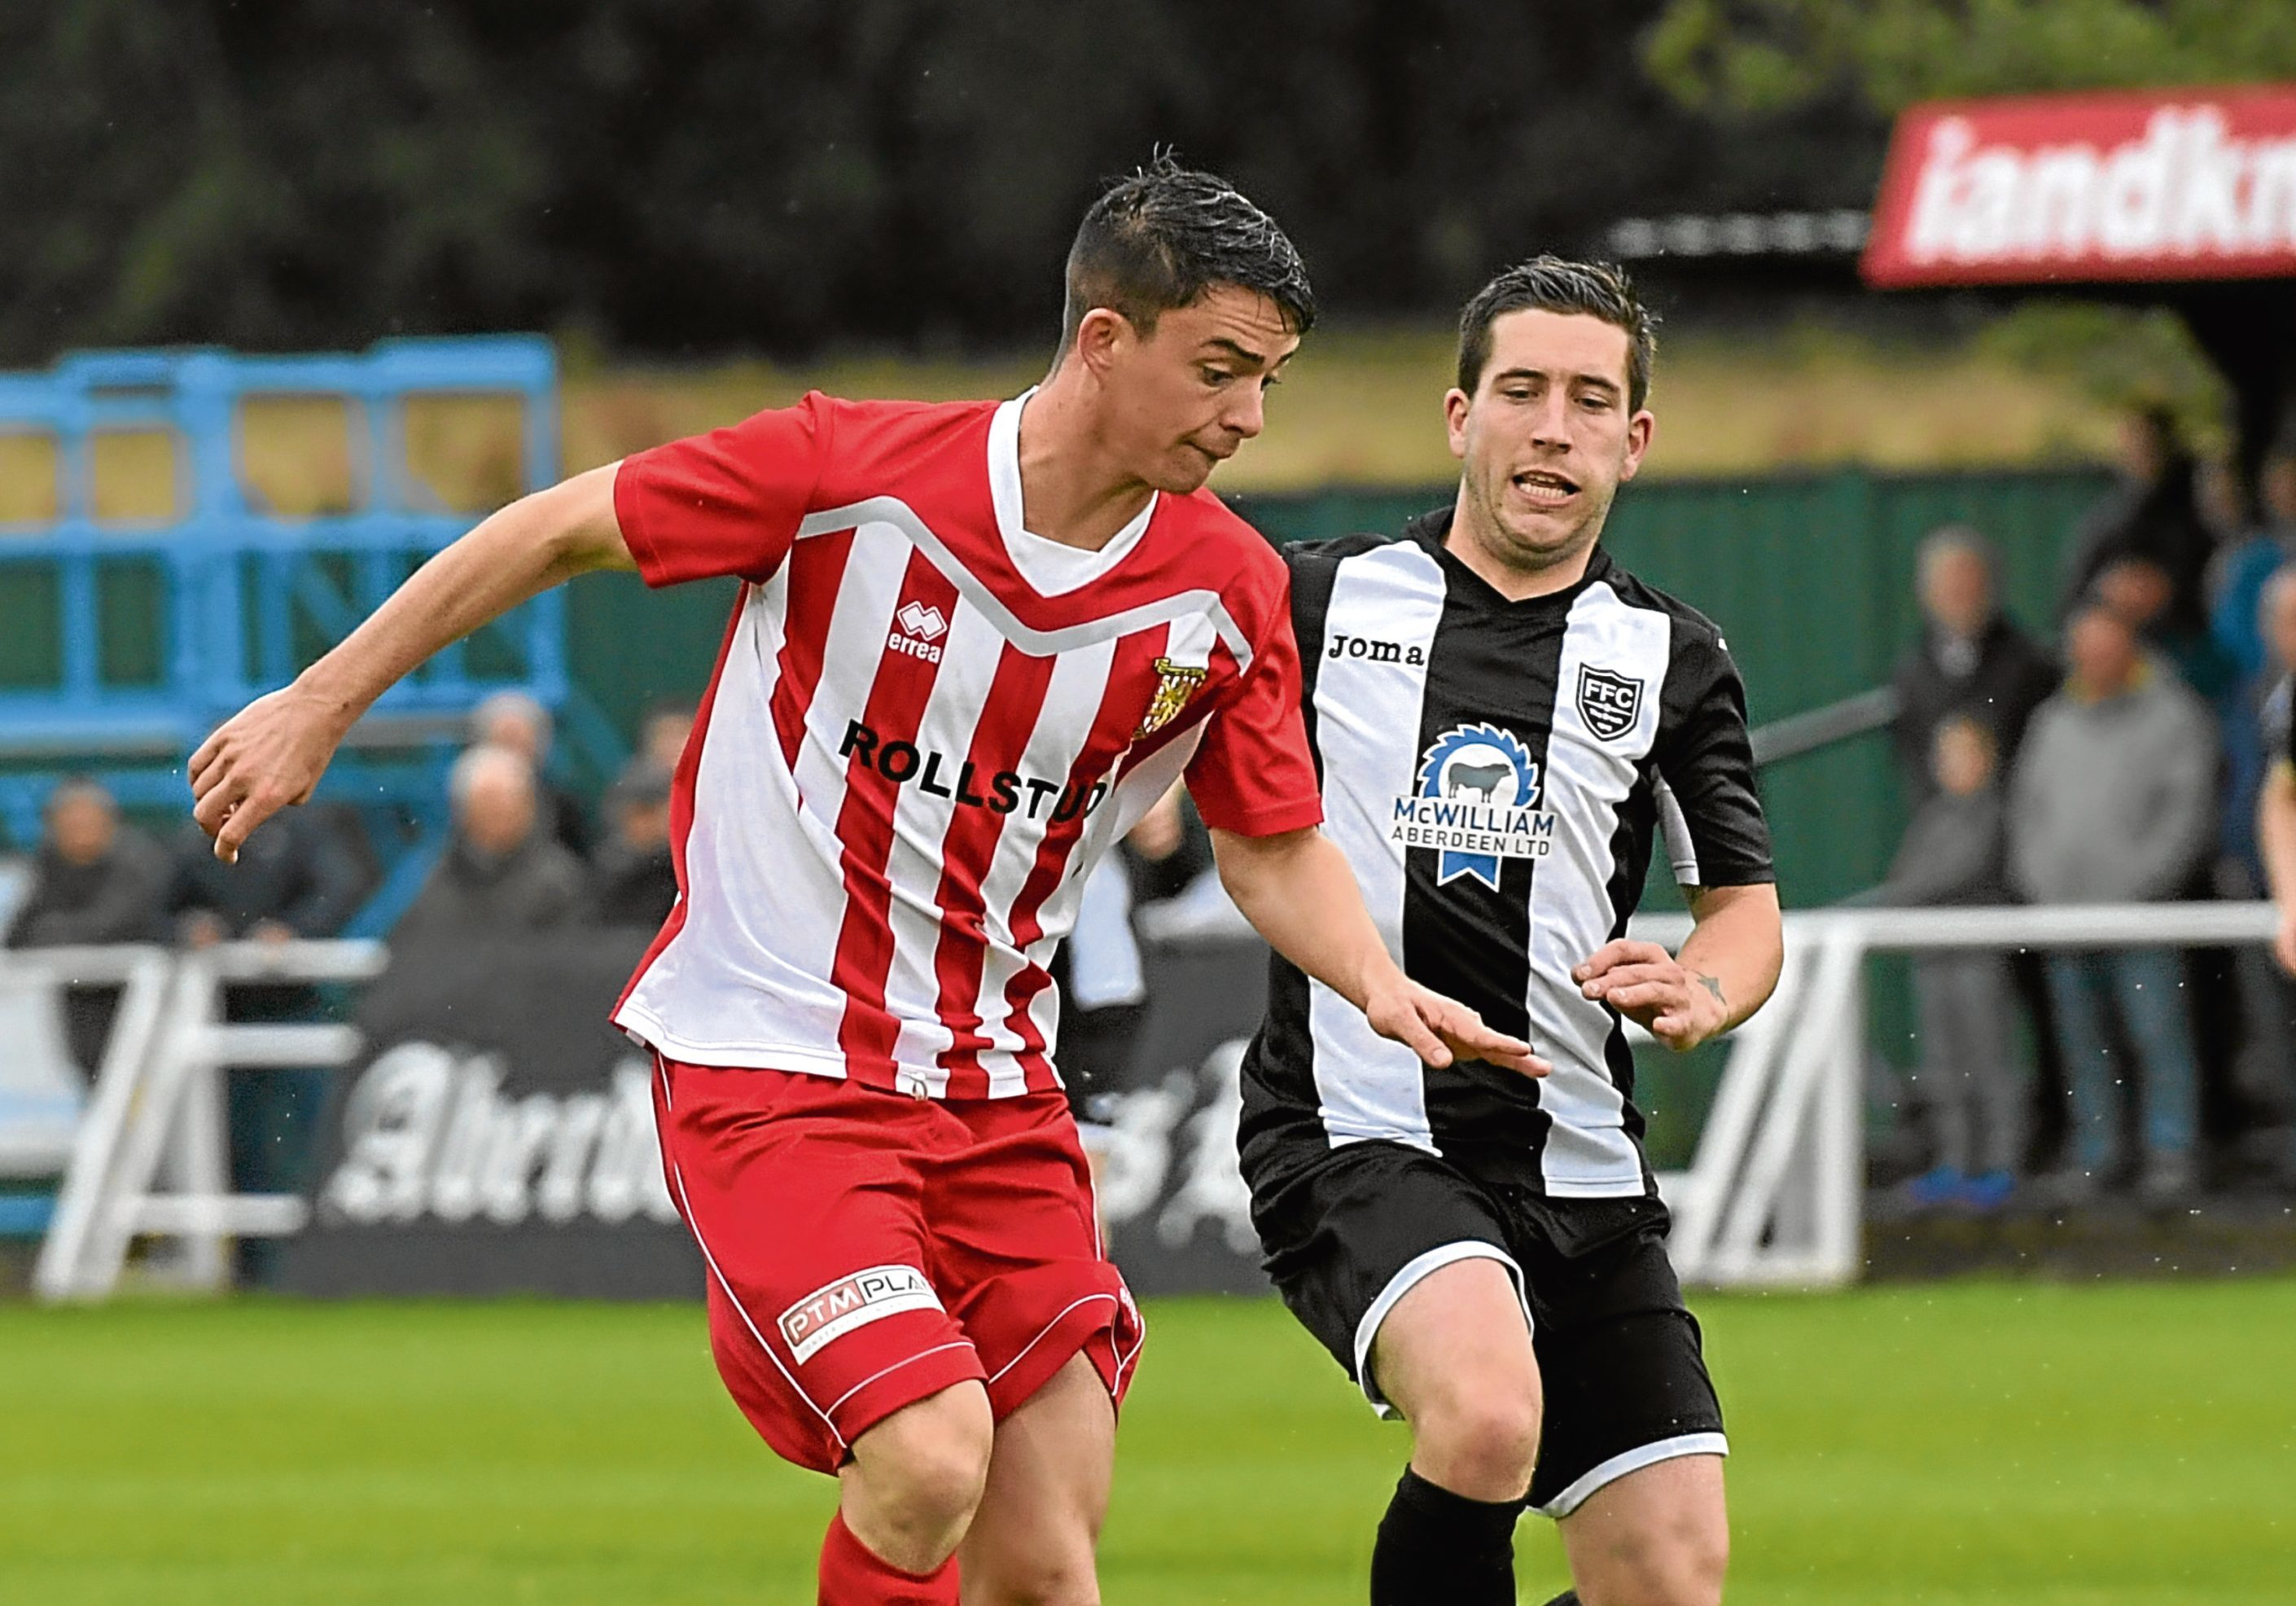 Formartine's Scott Ferries and Fraserburgh's Michael Rae.